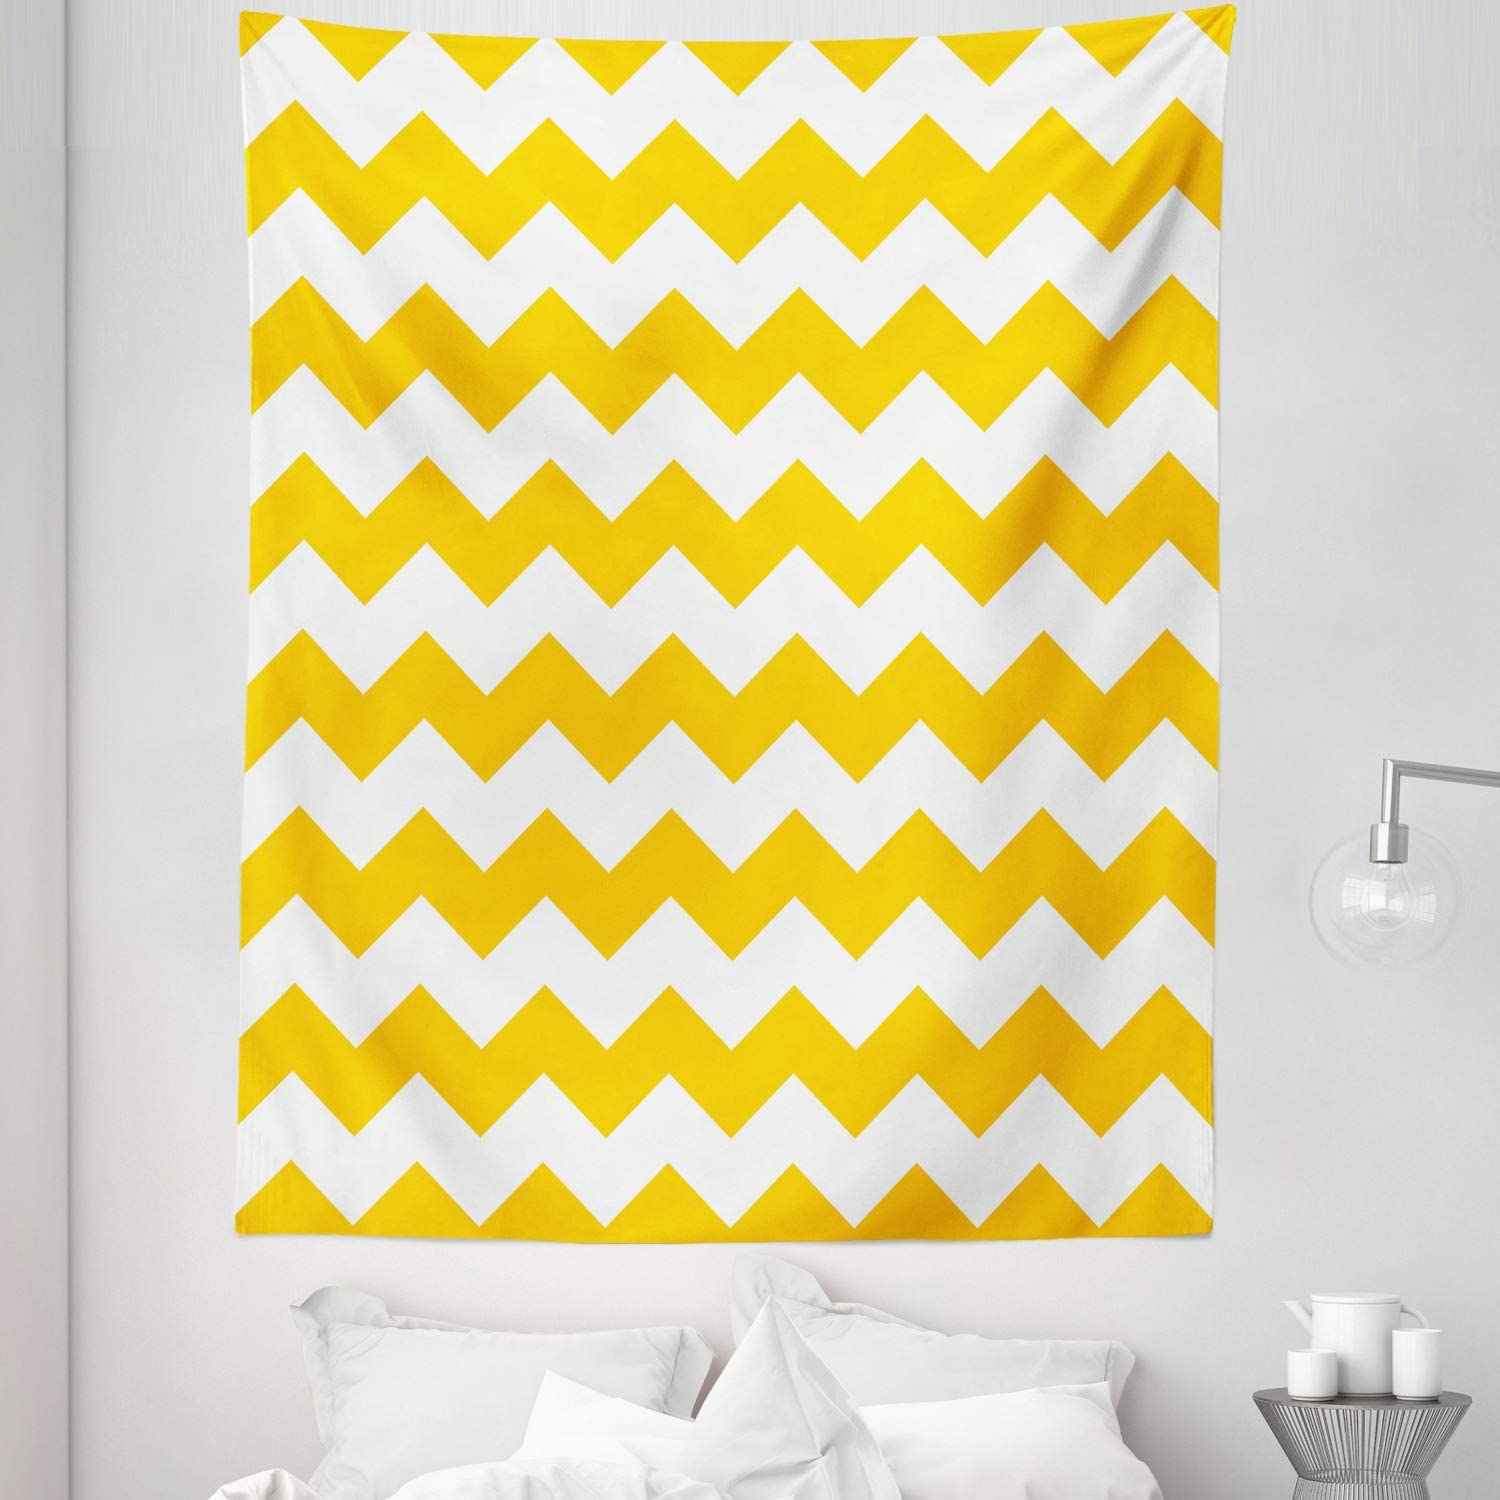 "Lunarable Mustard Tapestry Twin Size, Zigzag Pattern Chevron Criss-Crossed Triangle Arrow Style Lines Geometric, Wall Hanging Bedspread Bed Cover Wall Decor, 68"" X 88"", Yellow White"